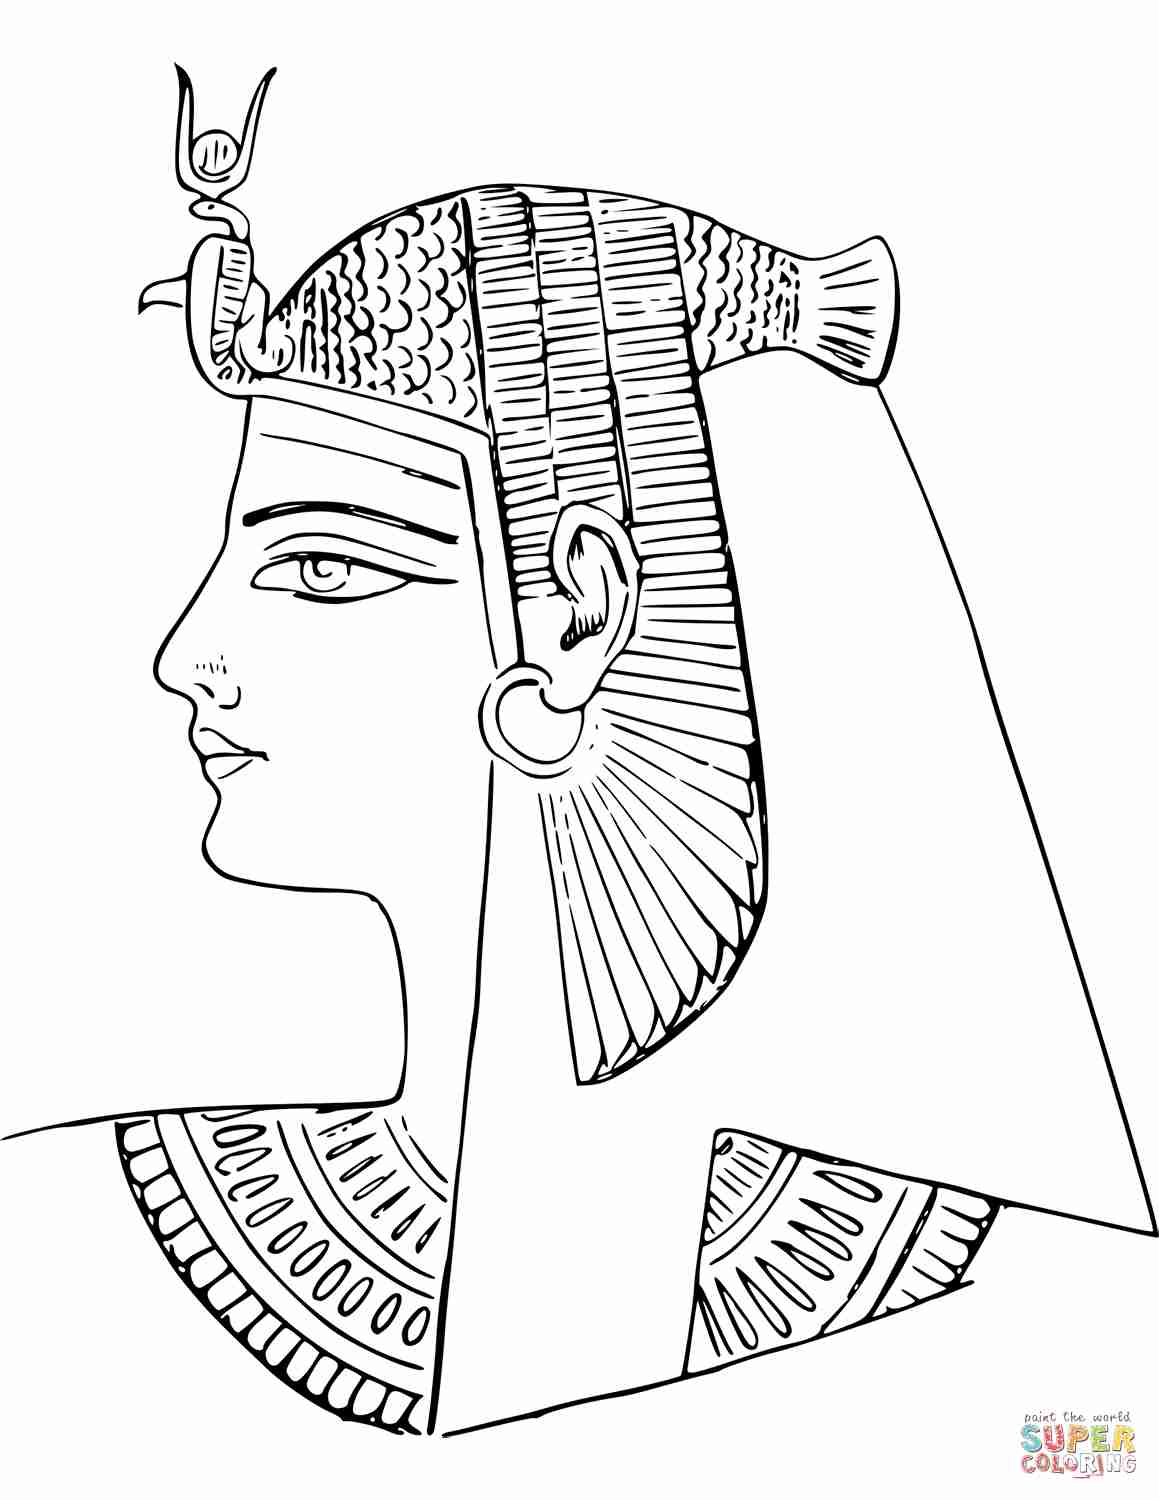 Queen Nefertiti Coloring Pages At Getcolorings